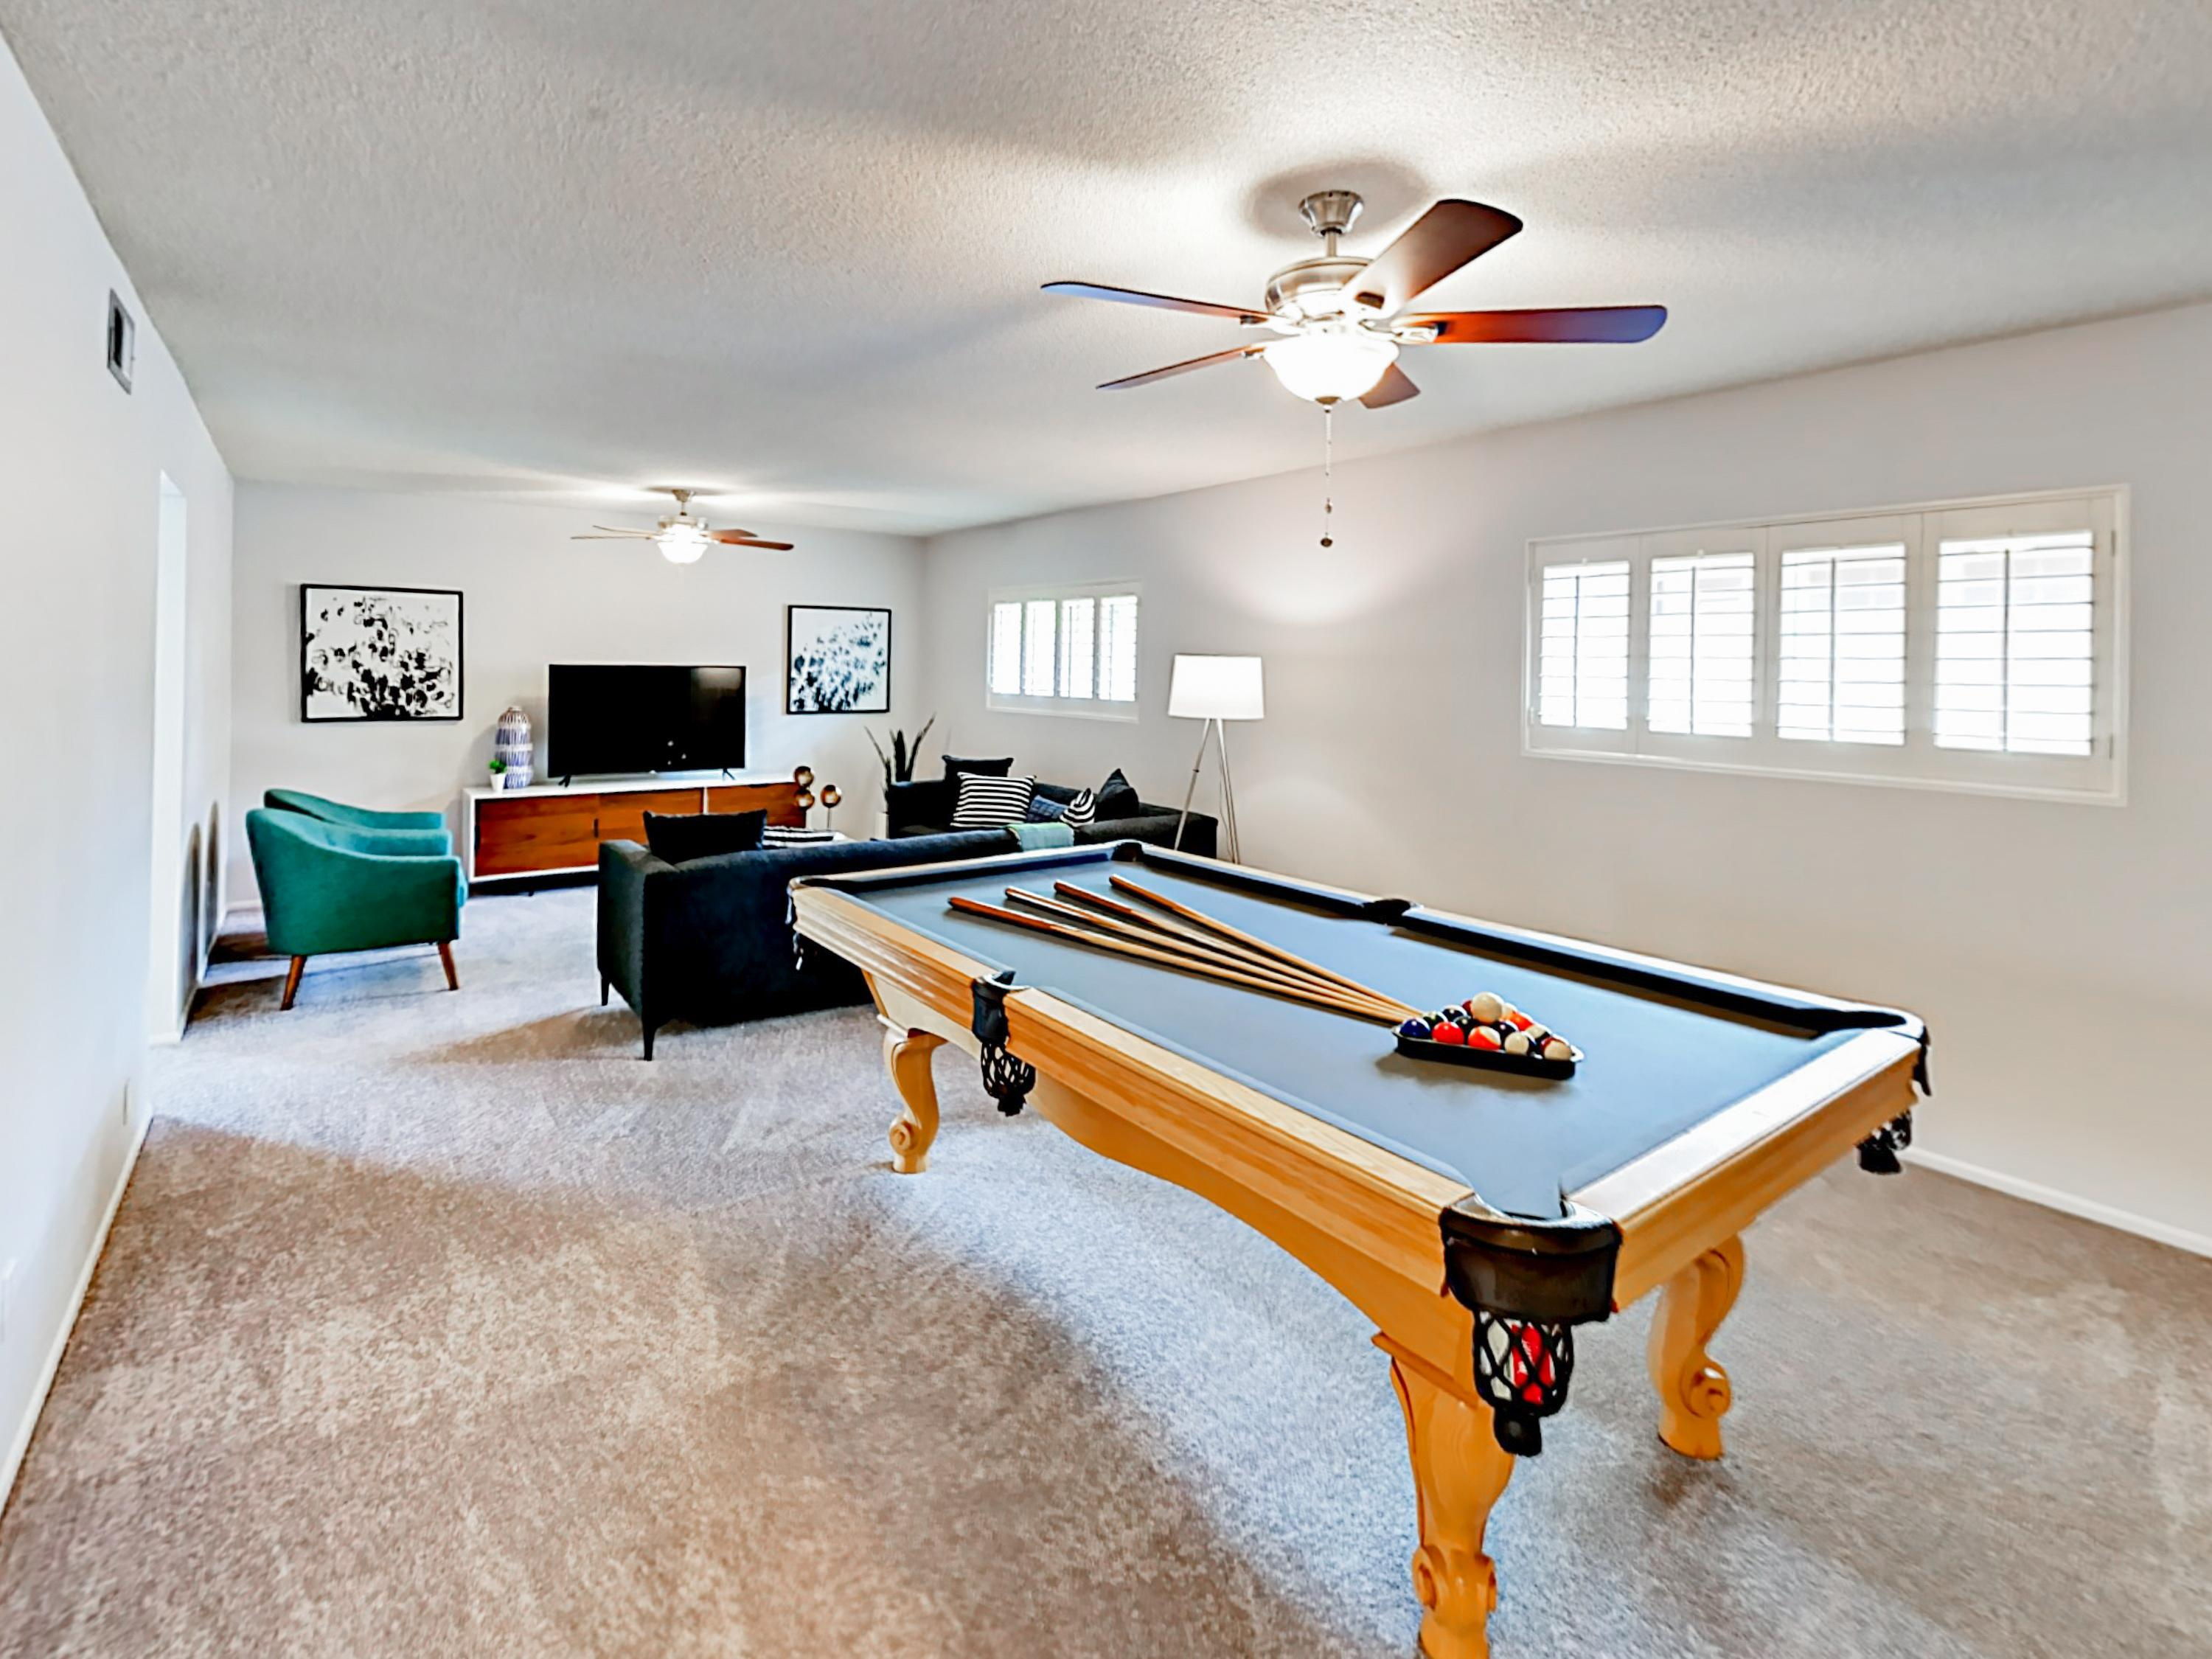 Rack up a game of pool right in the living room!